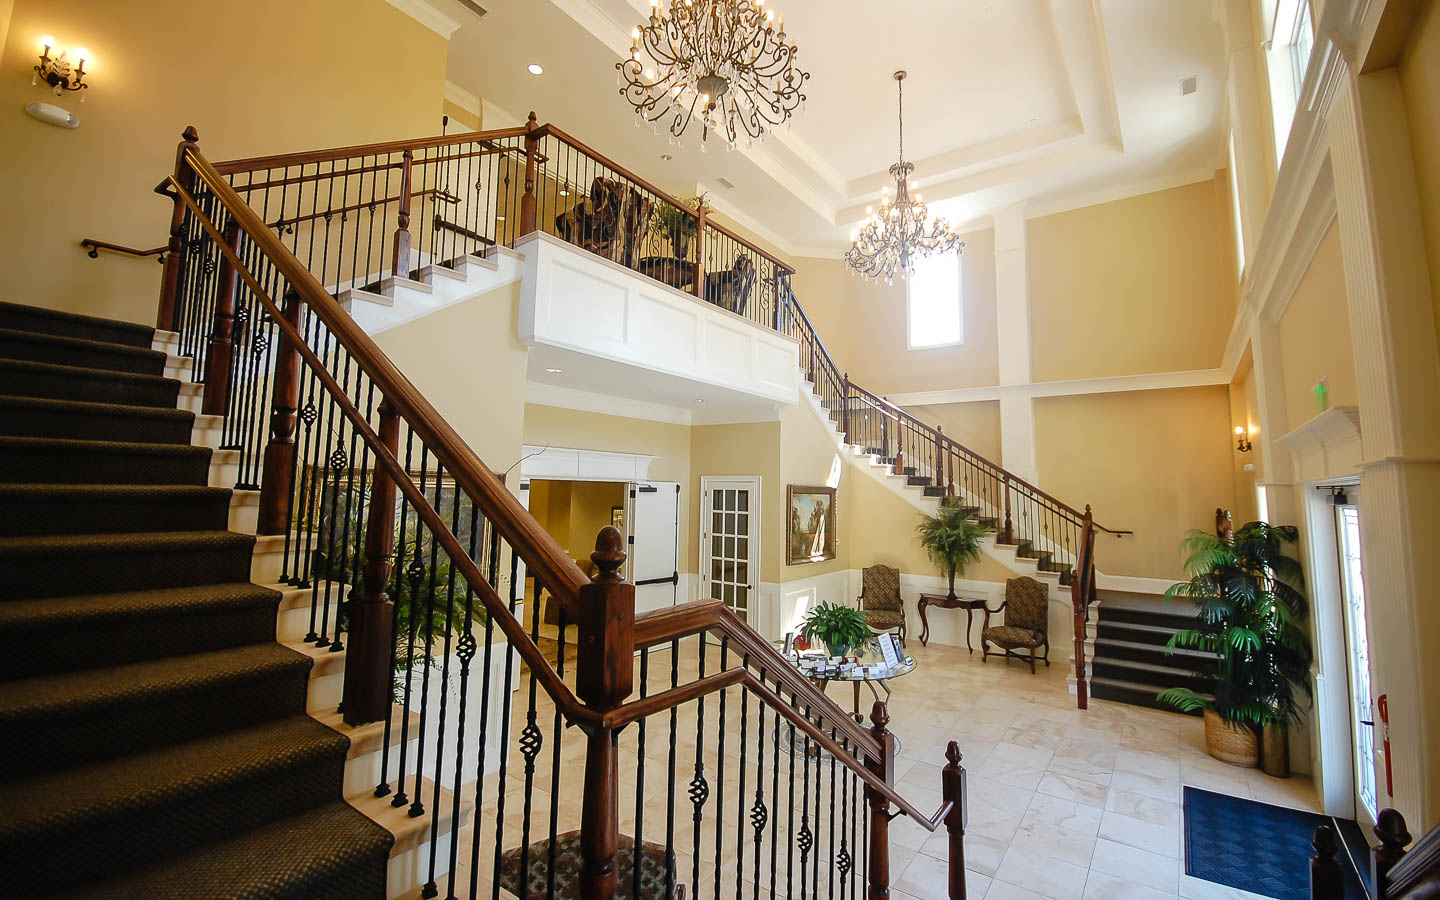 Meritage staircase from the first floor to the third floor